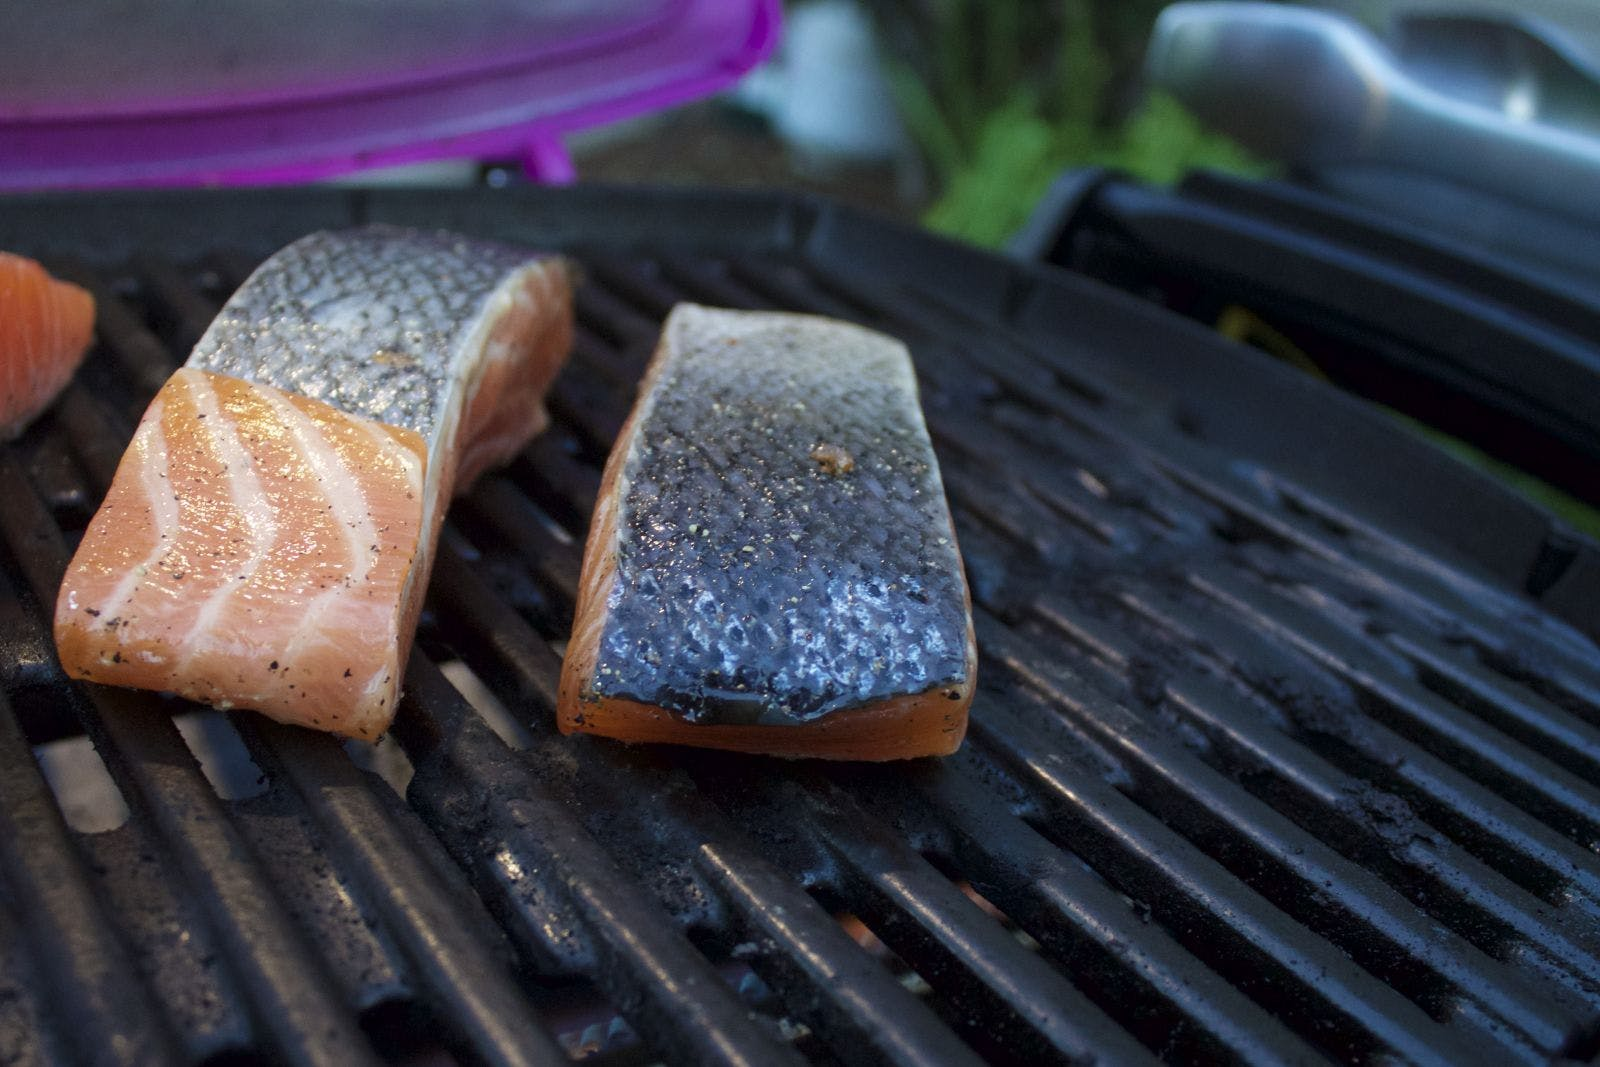 Salmon on Weber Q 1200 Cooking Grates